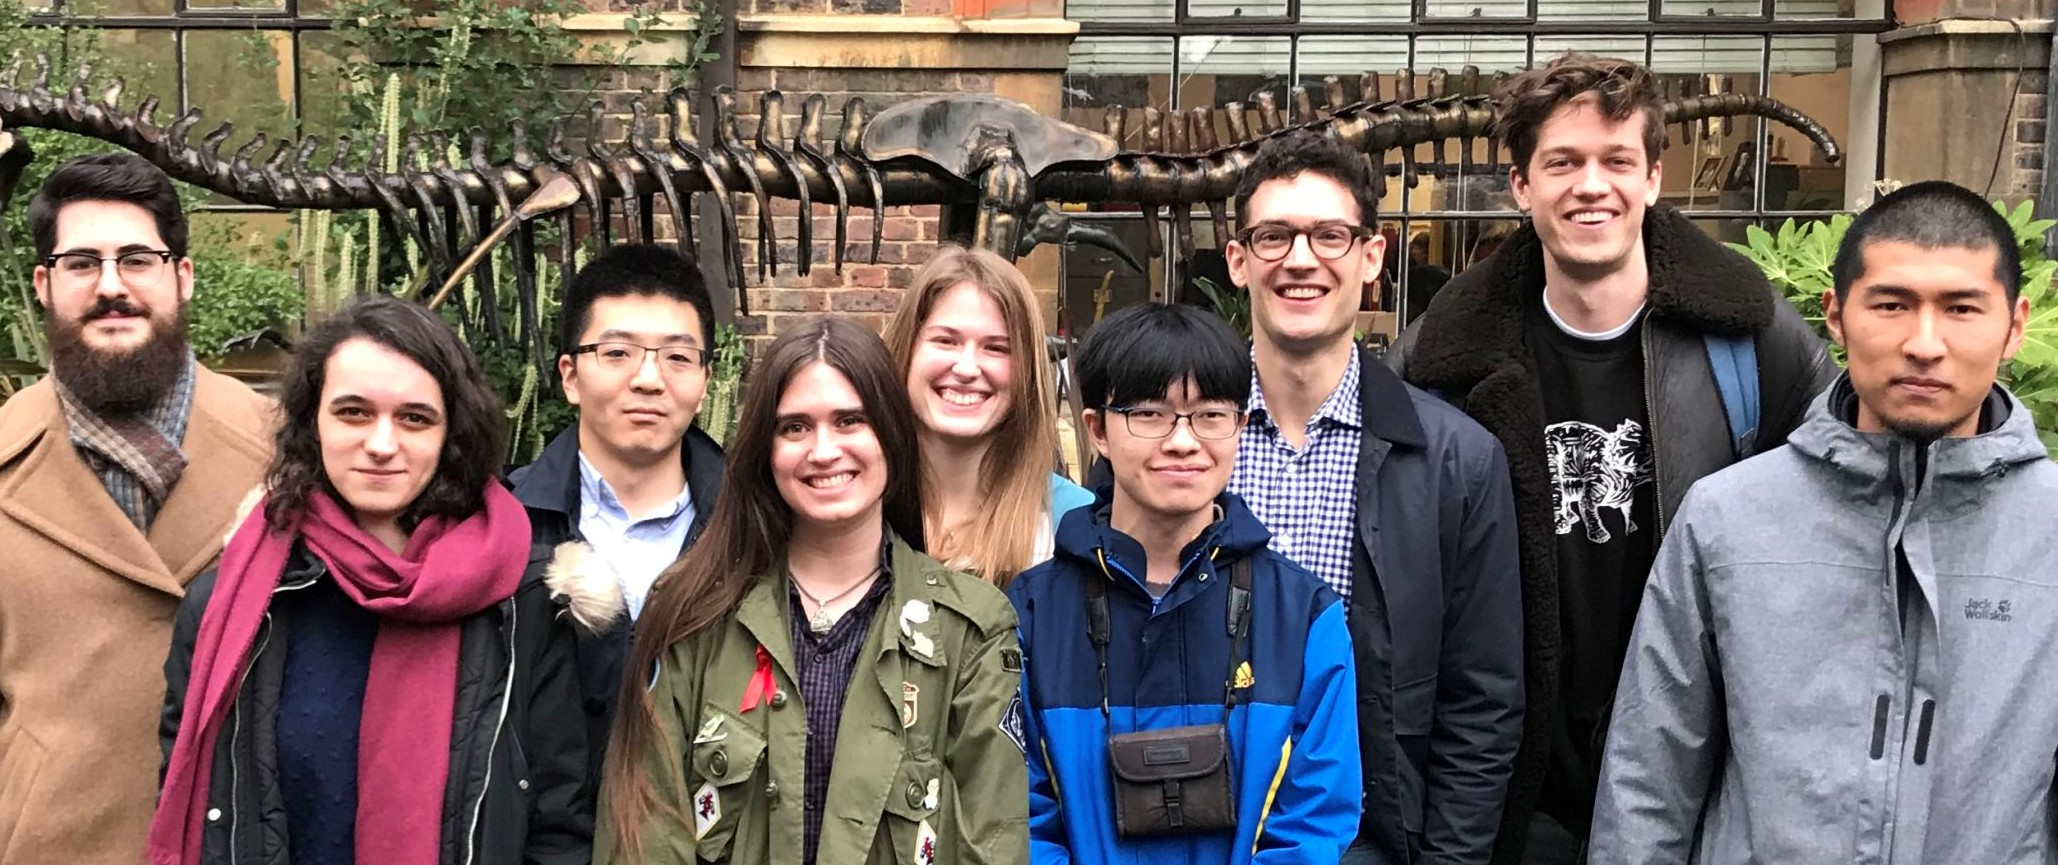 Image of Daniel Field, third from right, smiling with his research group